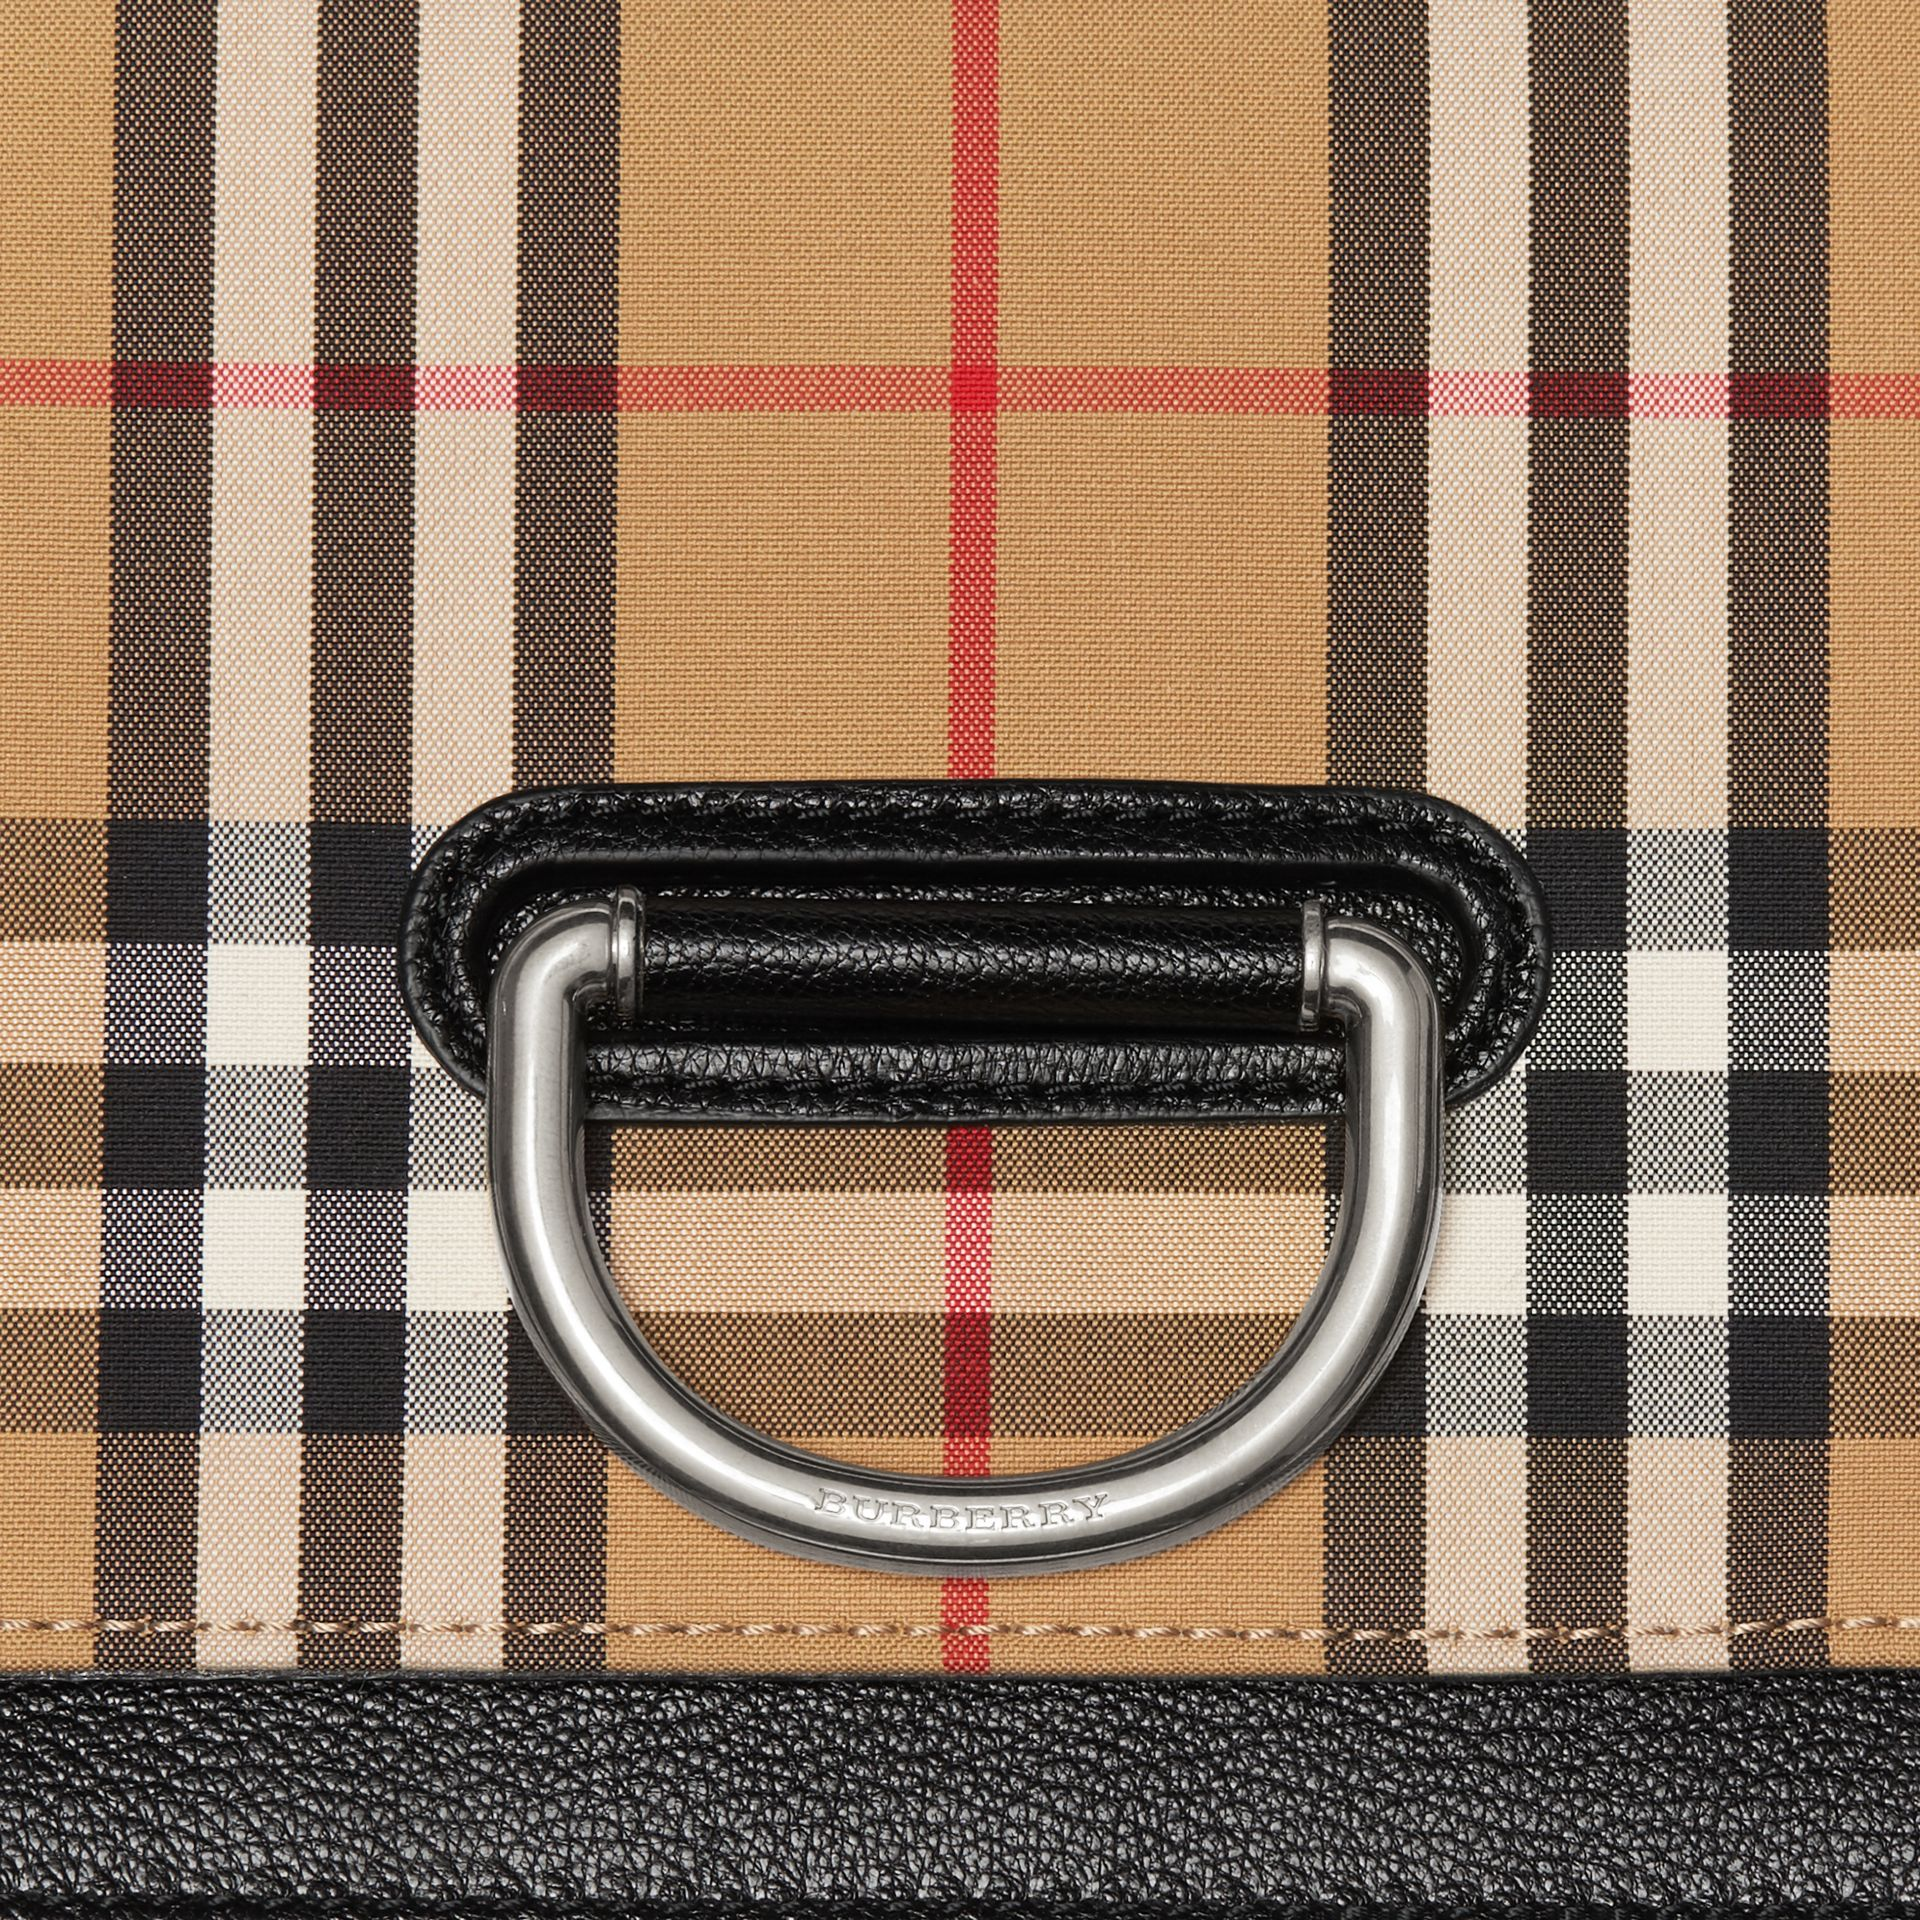 Petit sac The D-ring en cuir et à motif Vintage check (Noir/jaune Antique) - Femme | Burberry Canada - photo de la galerie 1